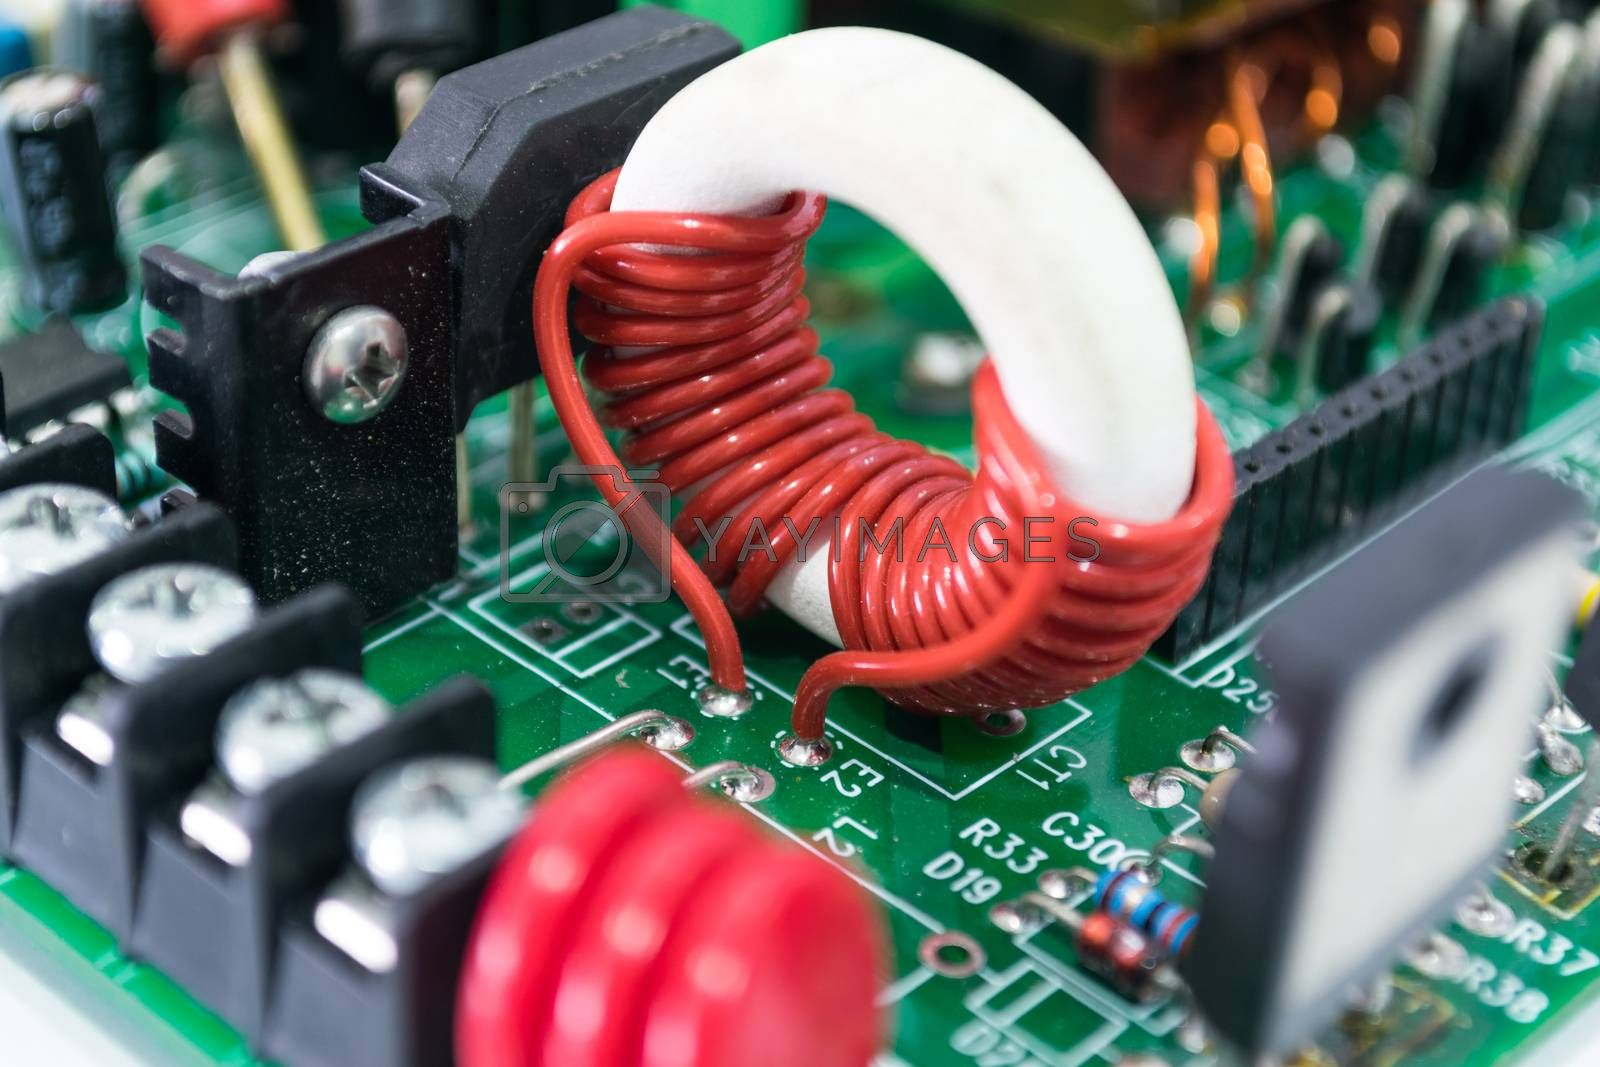 Electronics powers control board and accessories.